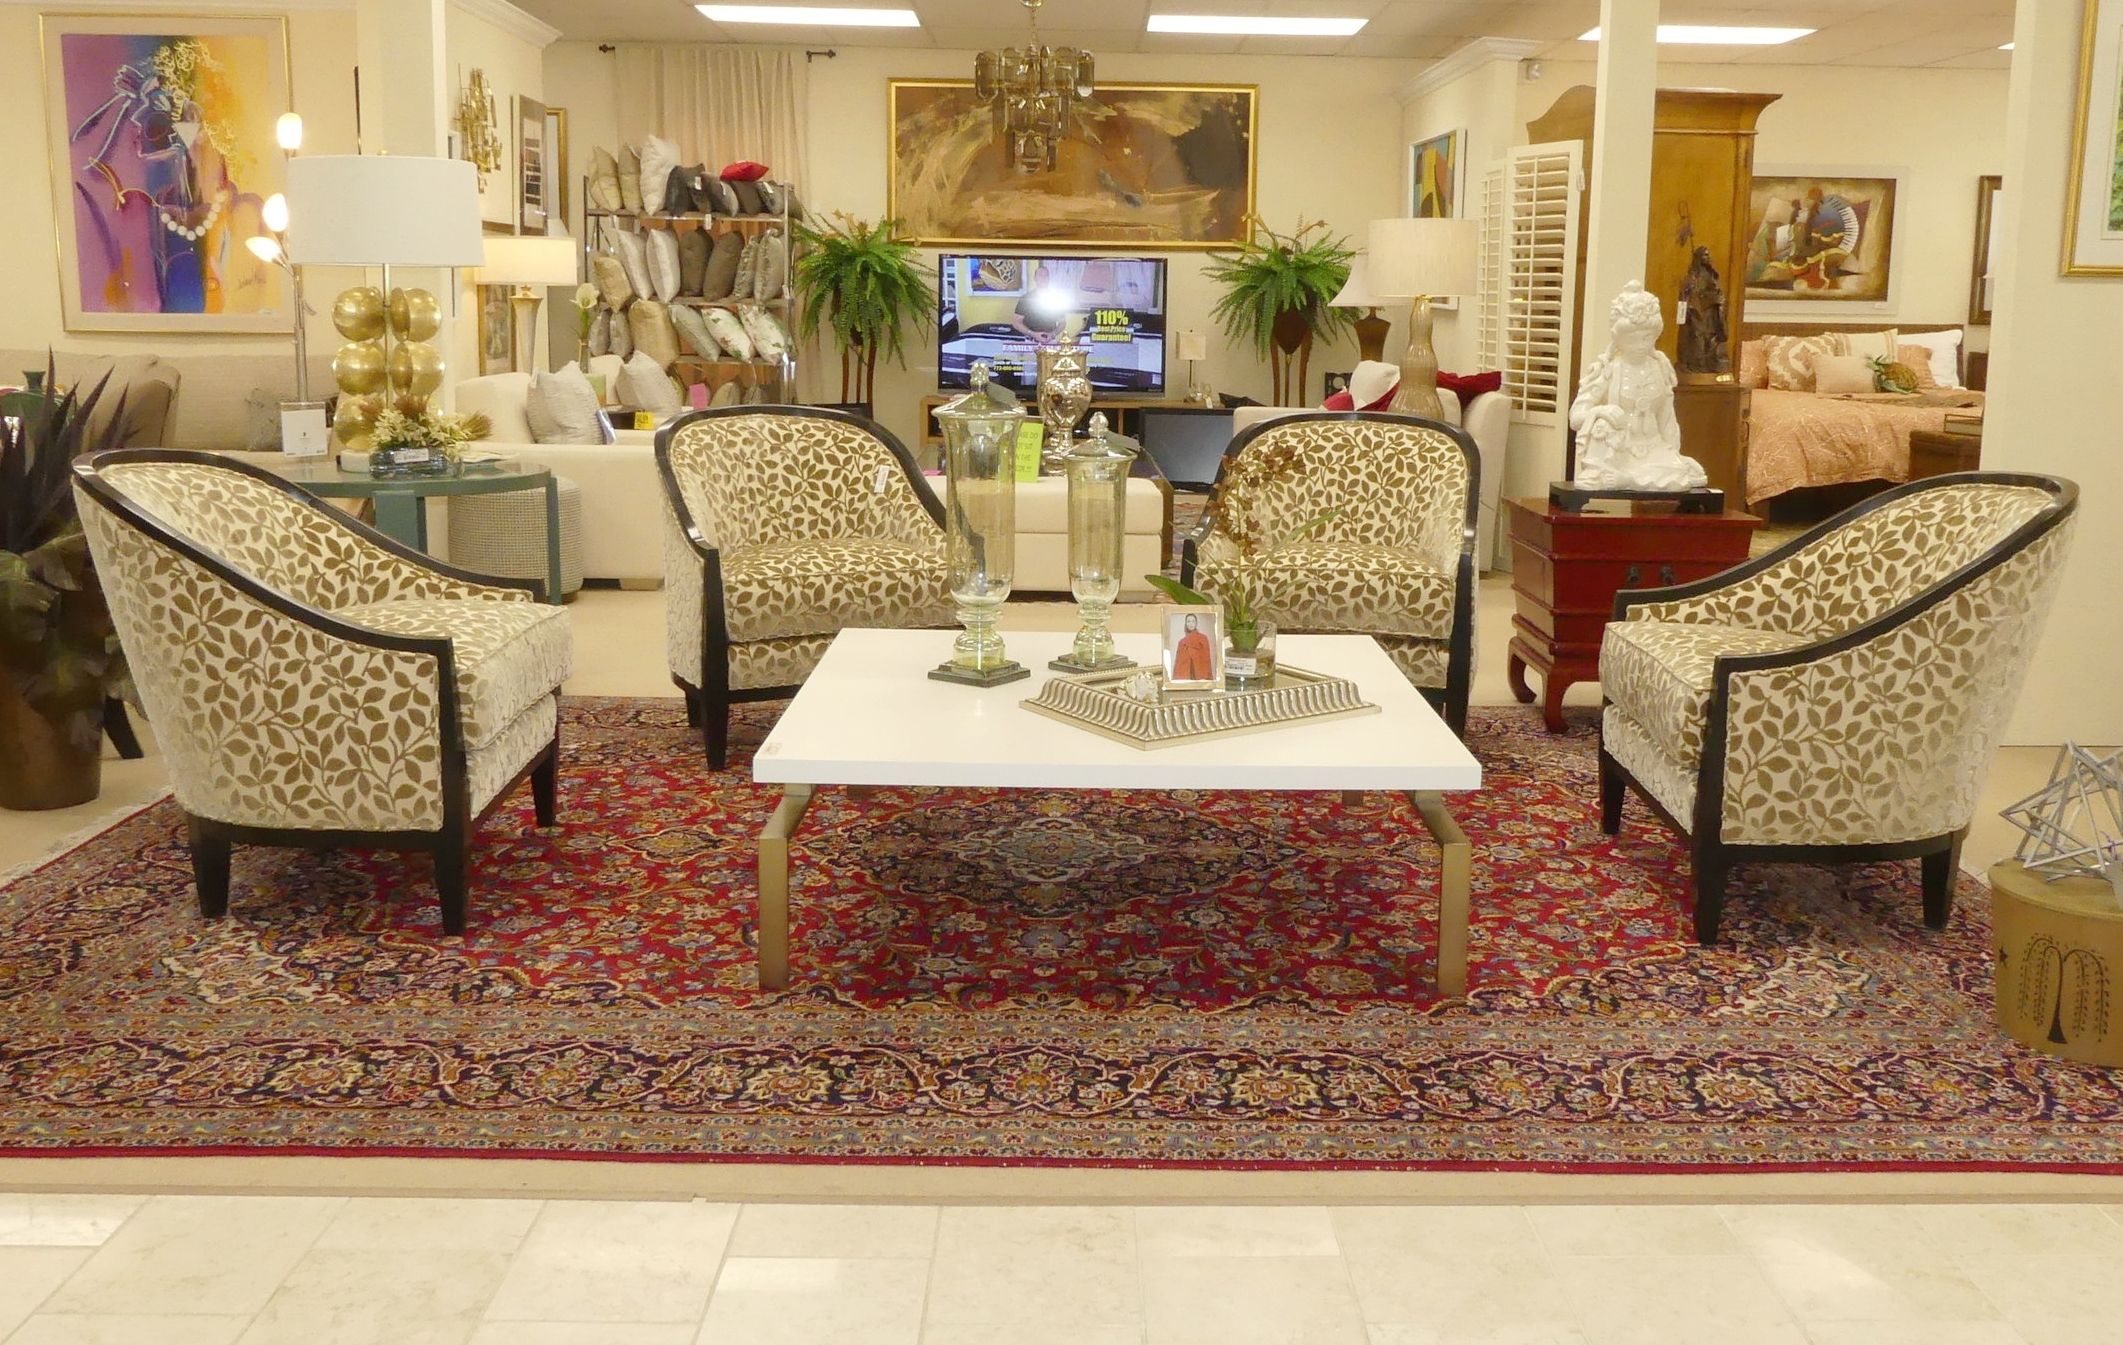 Sold Swaim F844 Lounge Chairs - Upholstered in Kravet Fabric